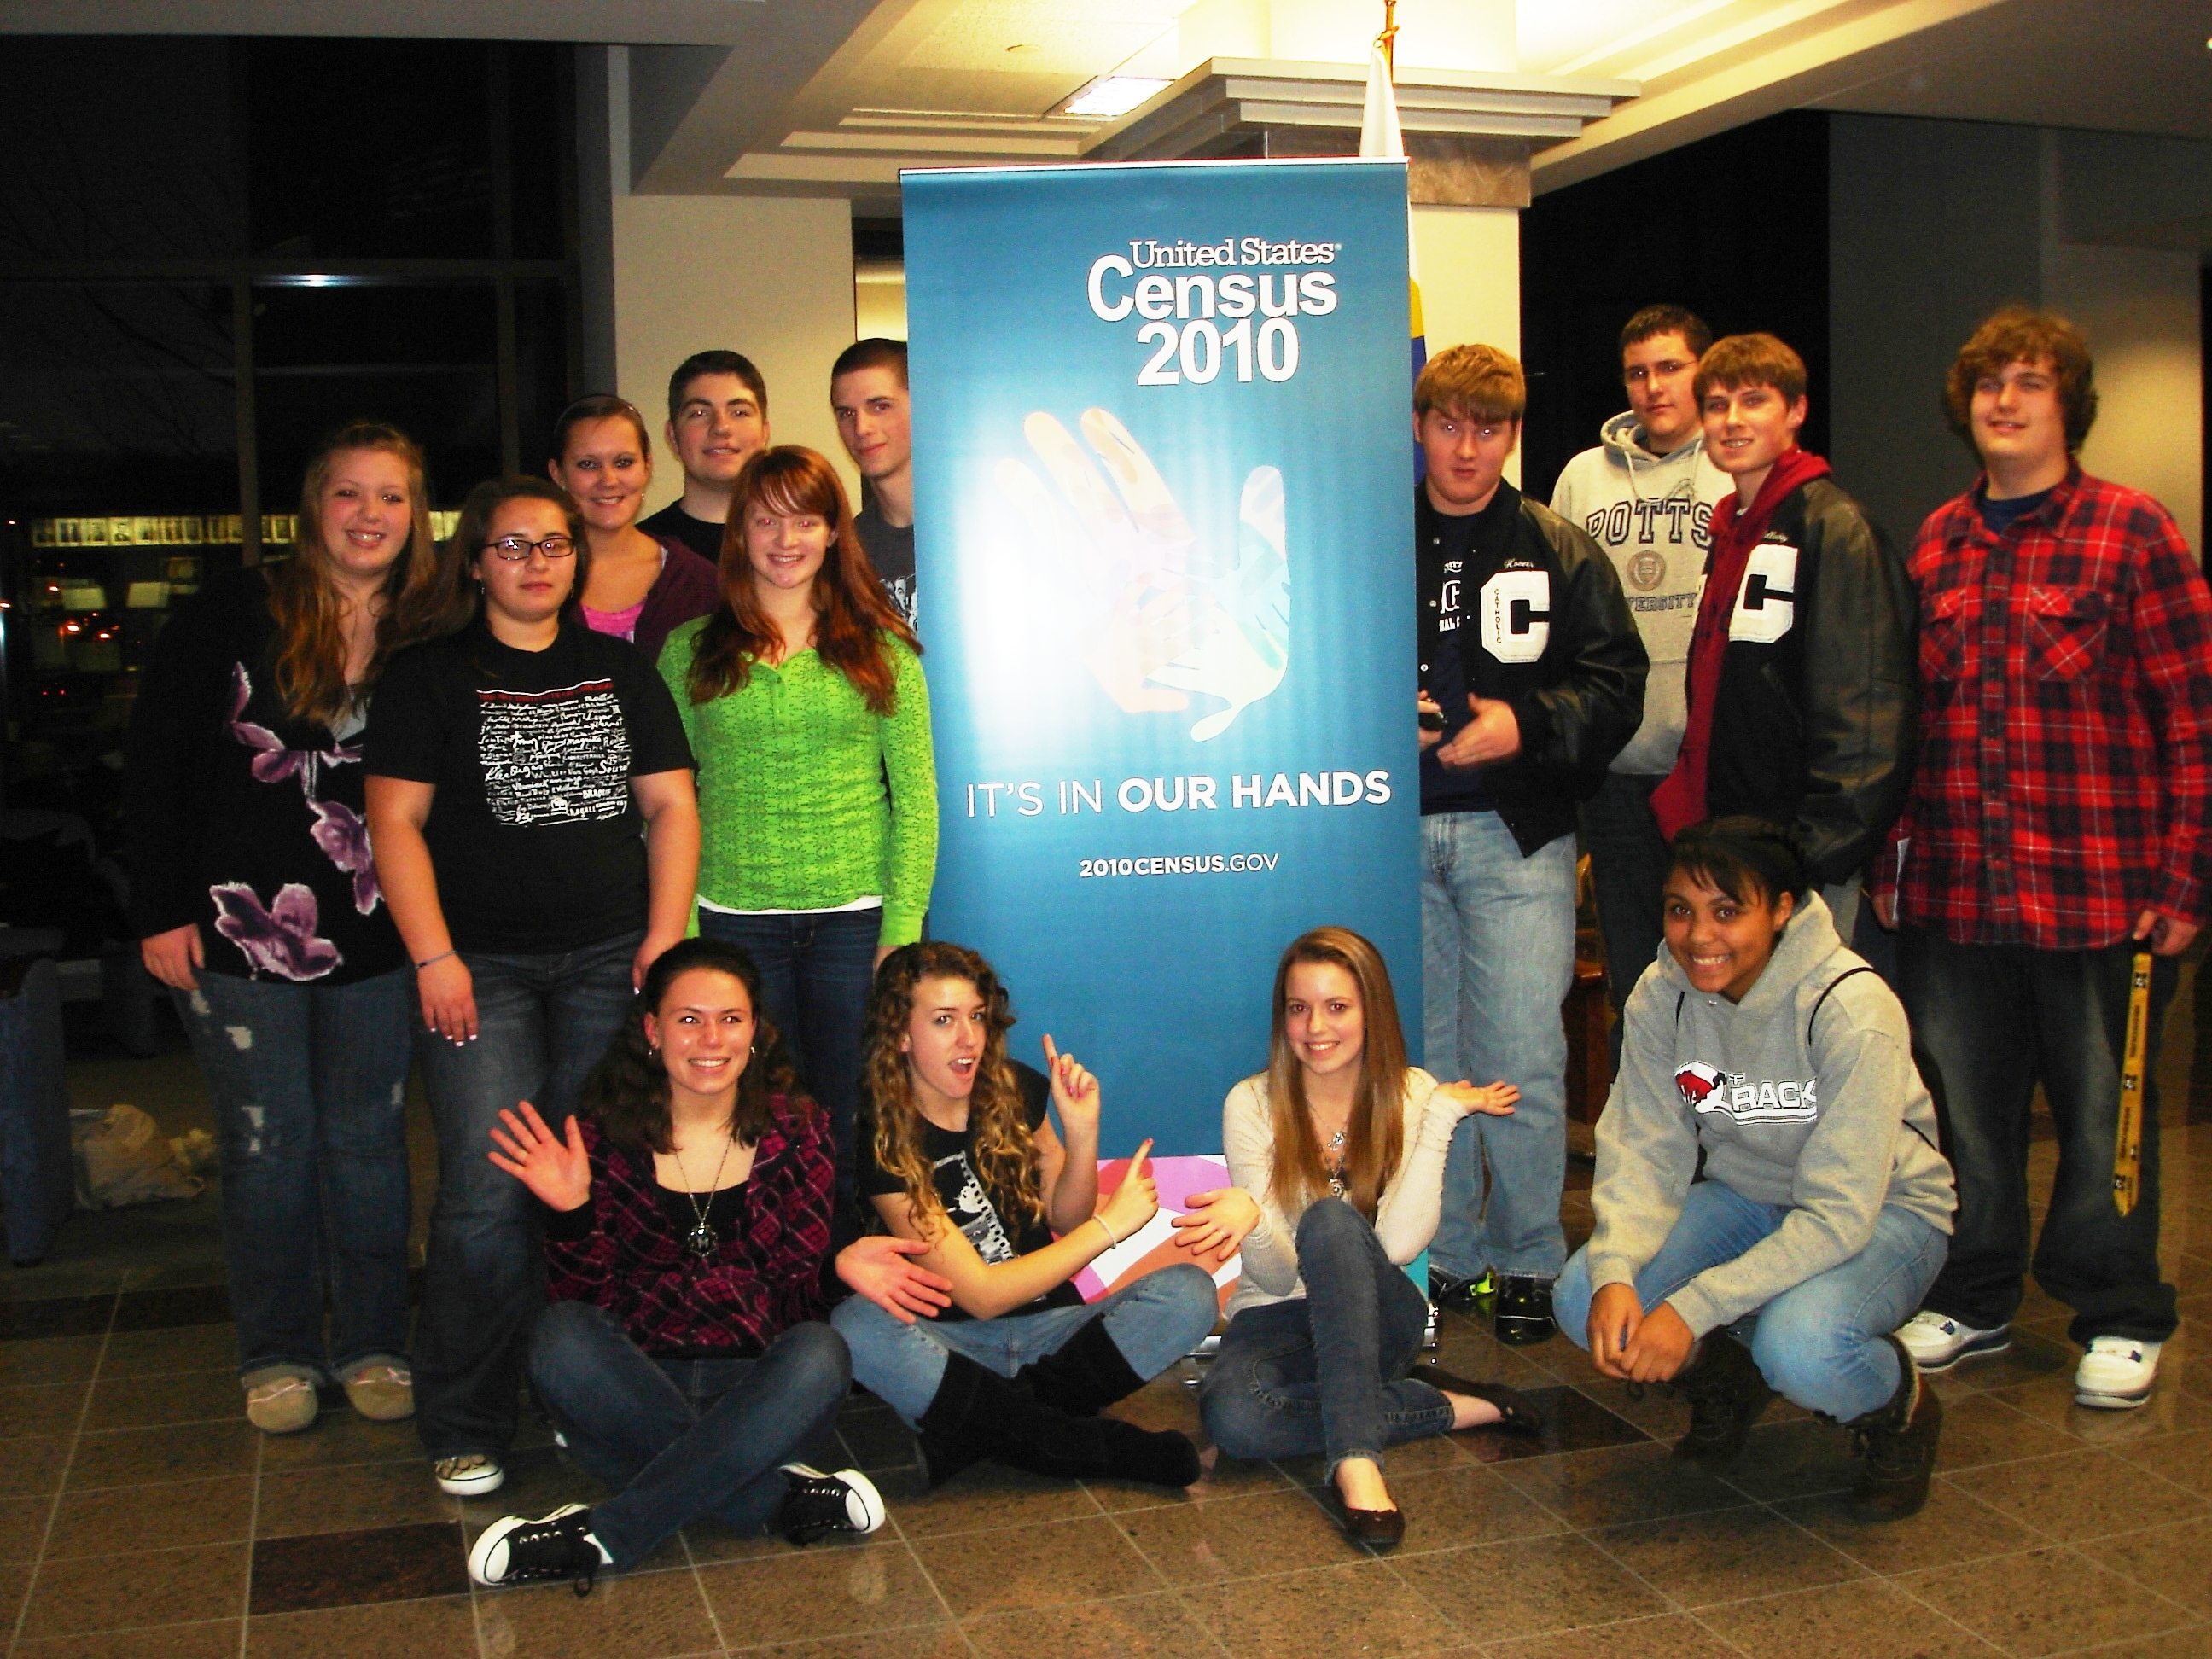 A group of teens in front of a 2010 Census banner